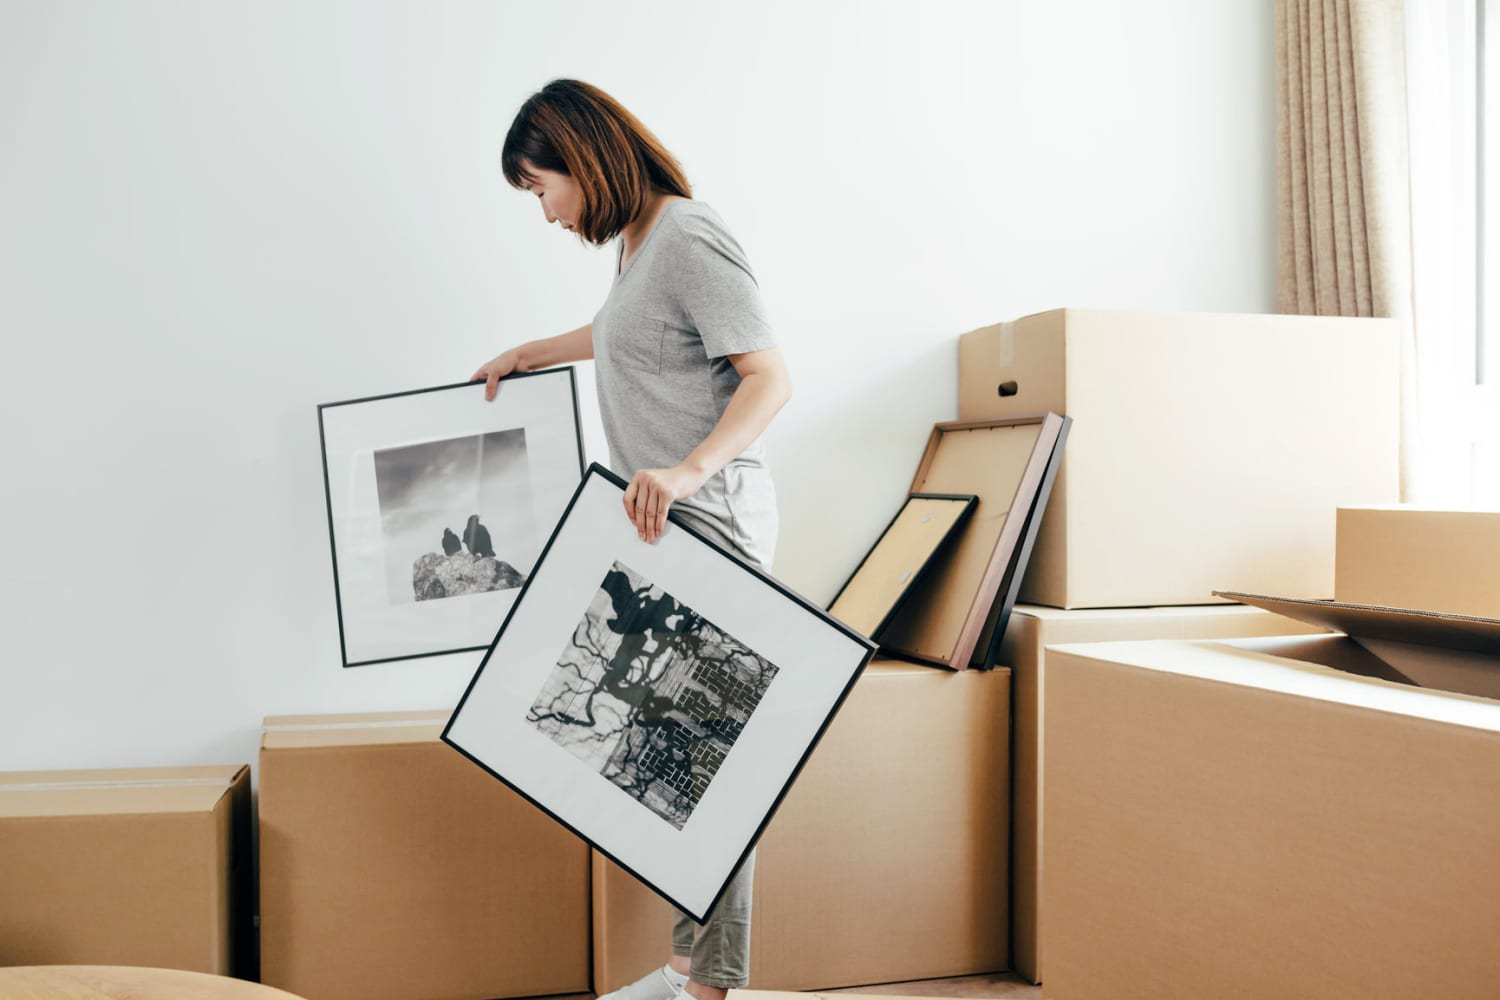 4 Moving Apps That Will Help You Find the Right Movers for the Job